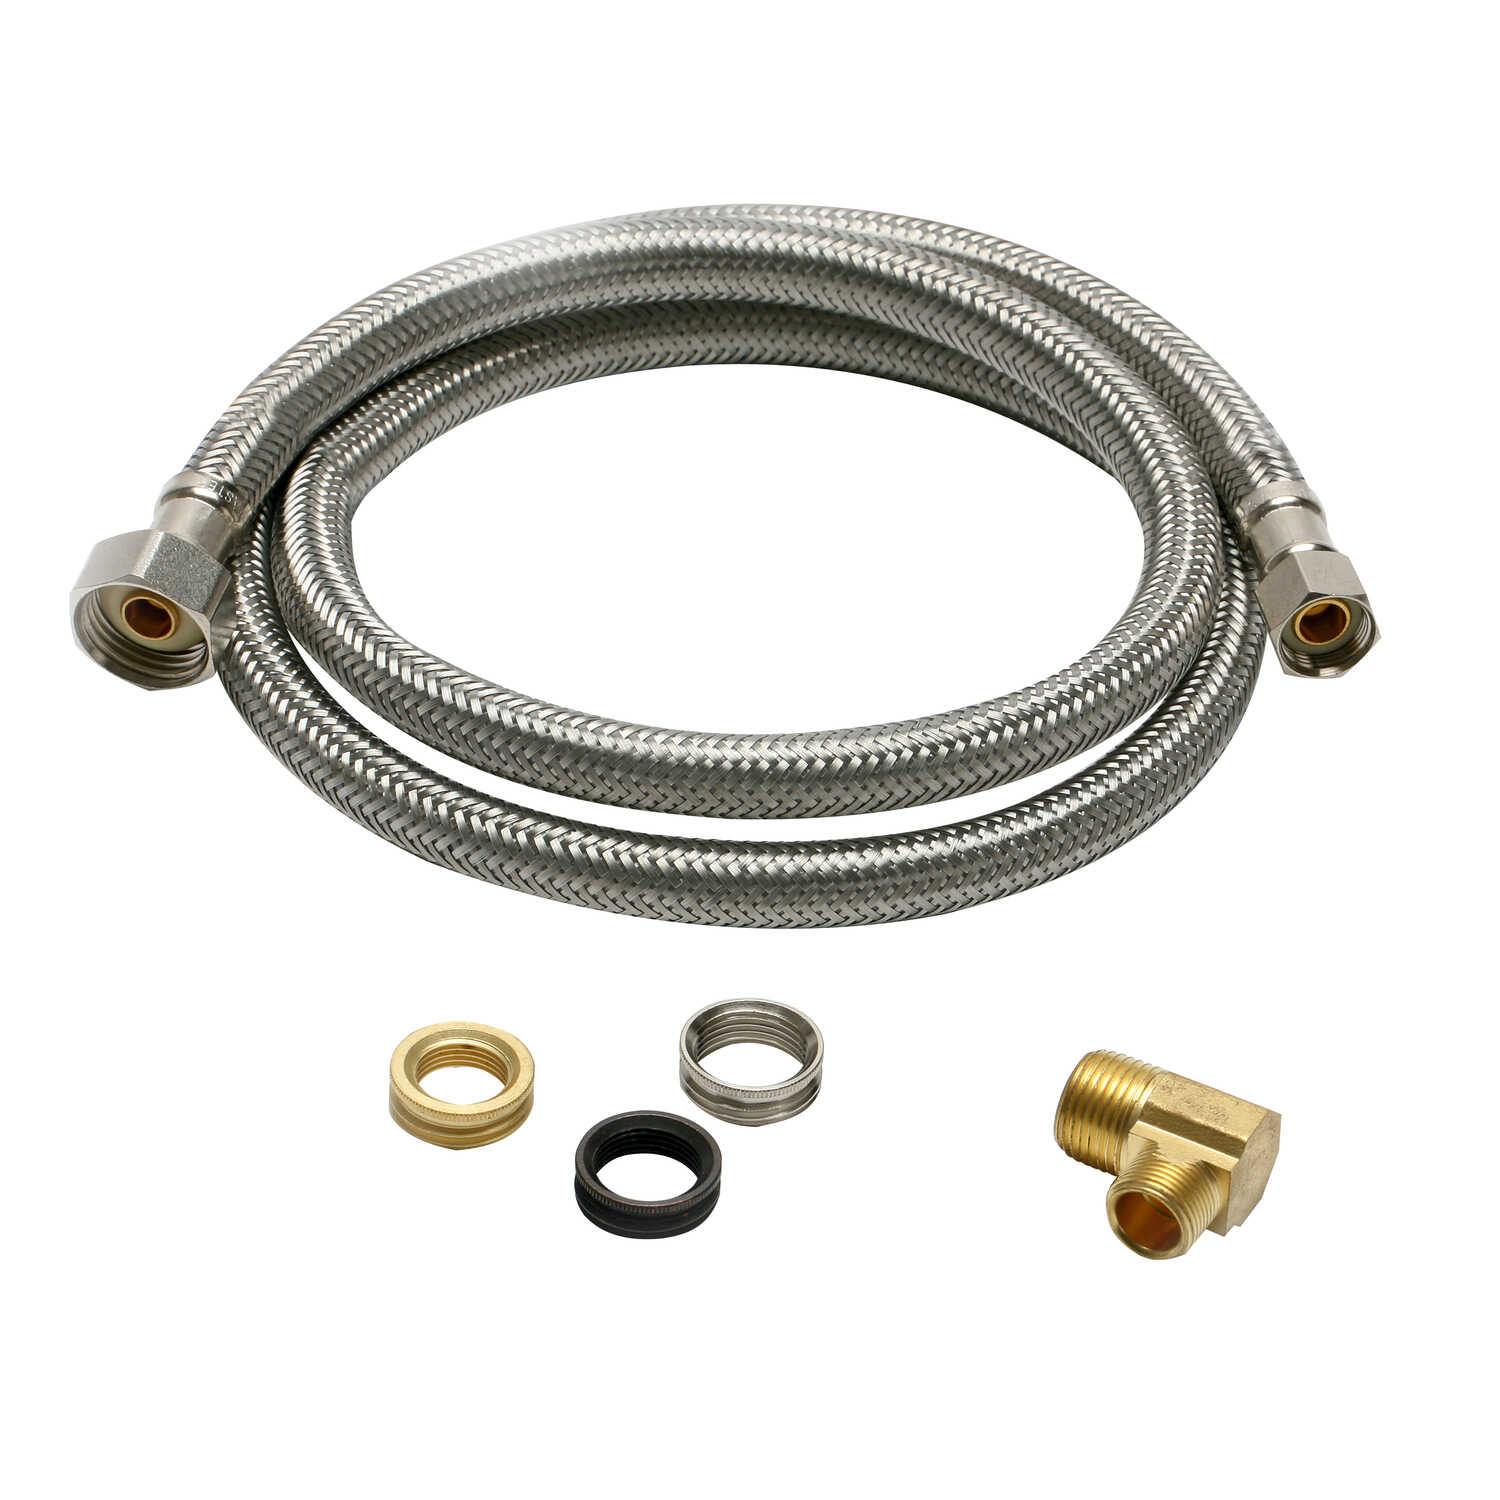 Fluidmaster  3/8 in. Compression   x 1/2 in. Dia. FIP  60 in. Stainless Steel  Supply Line